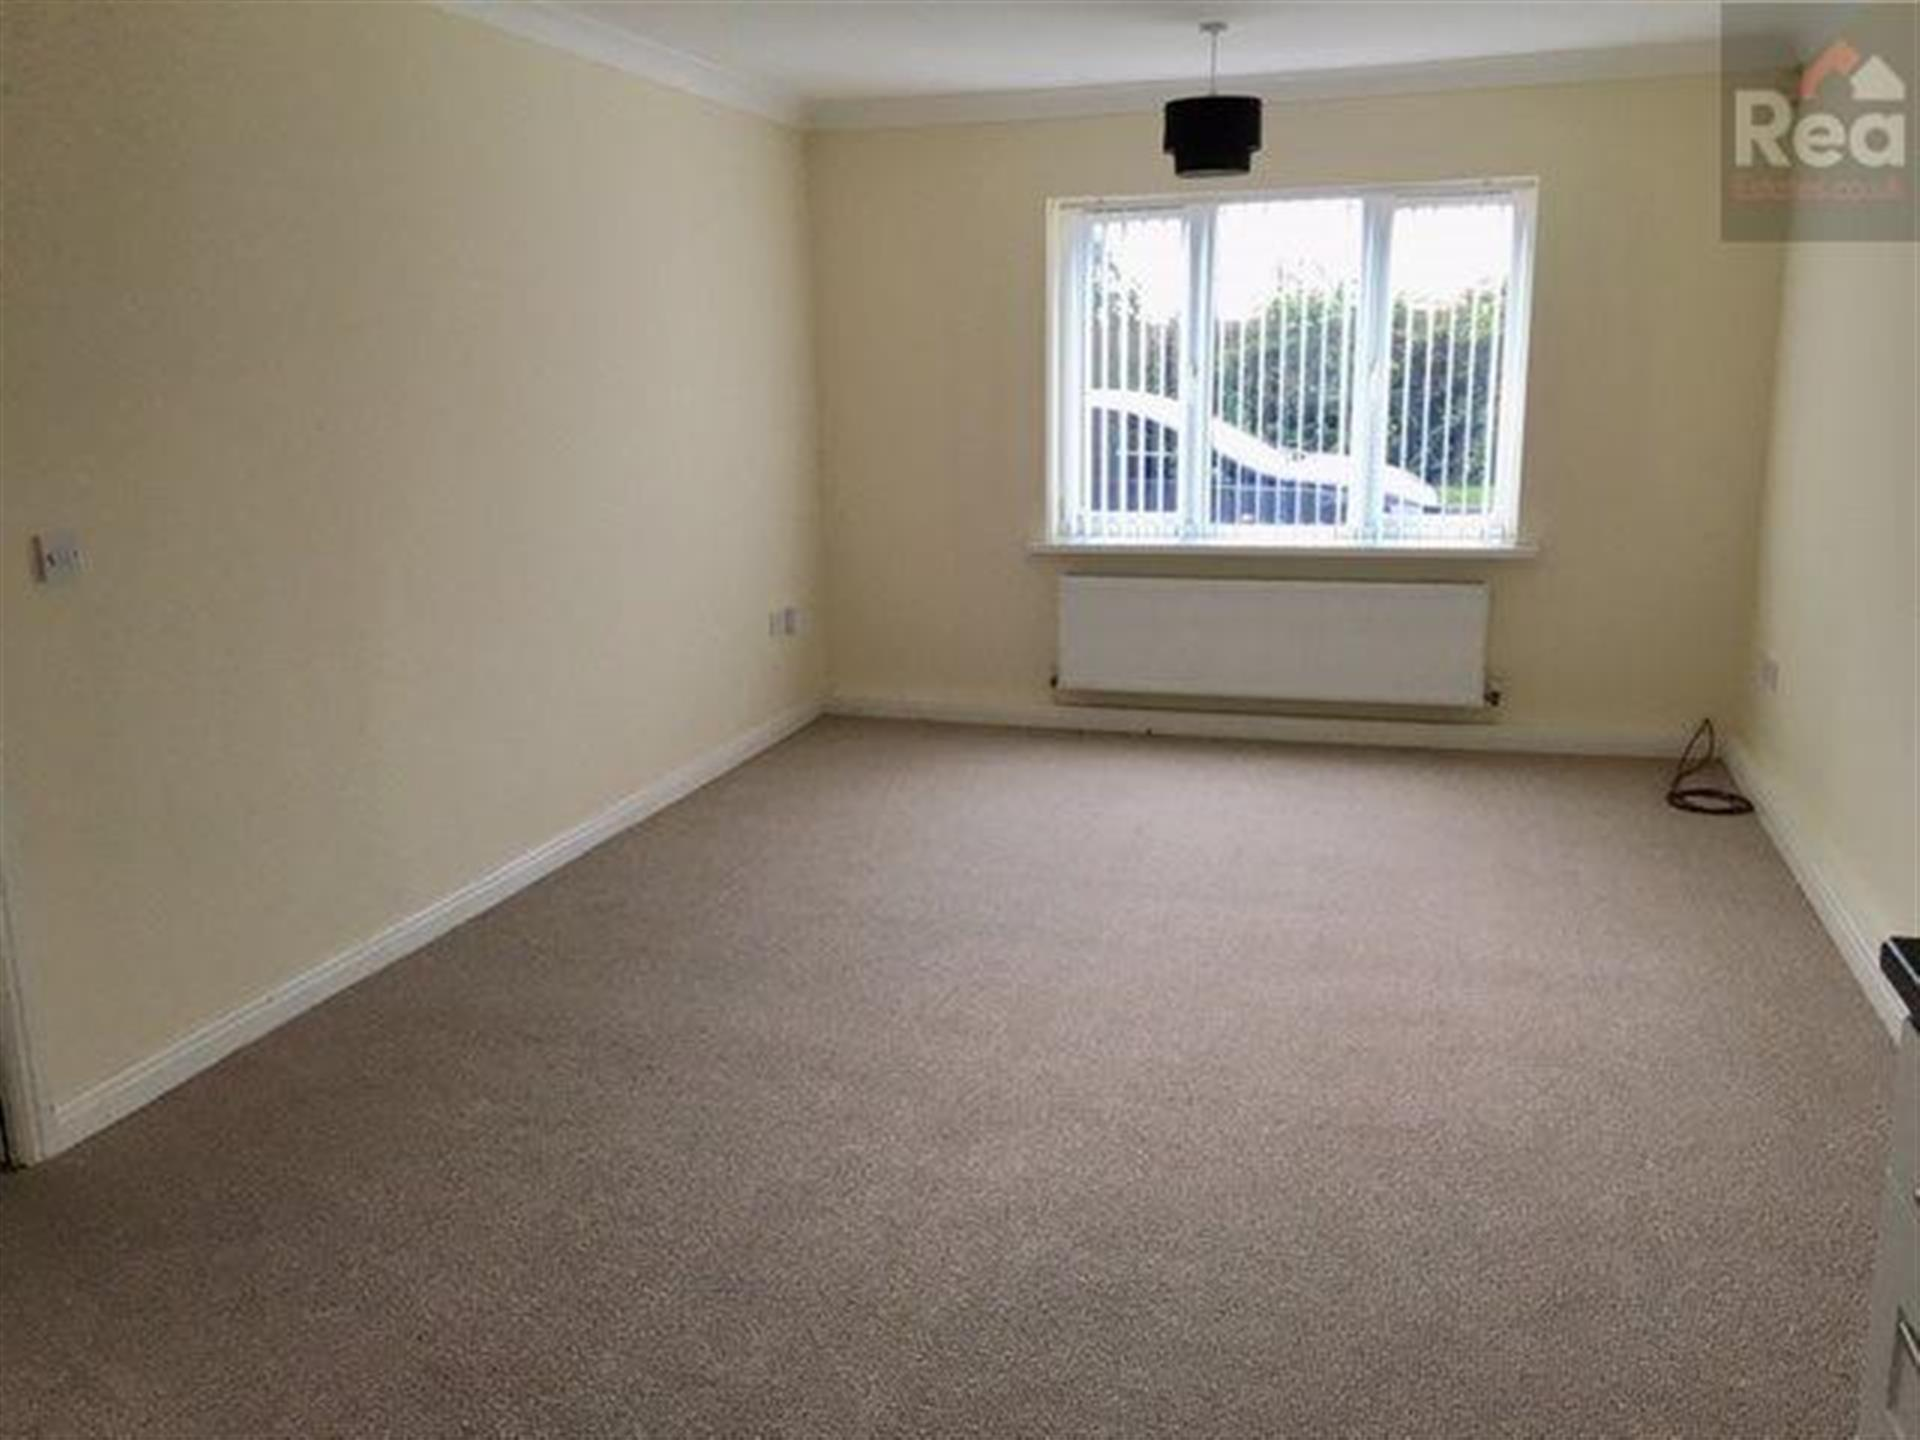 2 bedroom flat flat / apartment To Let in Tindale Crescent, Bishop Auckland - photograph 3.